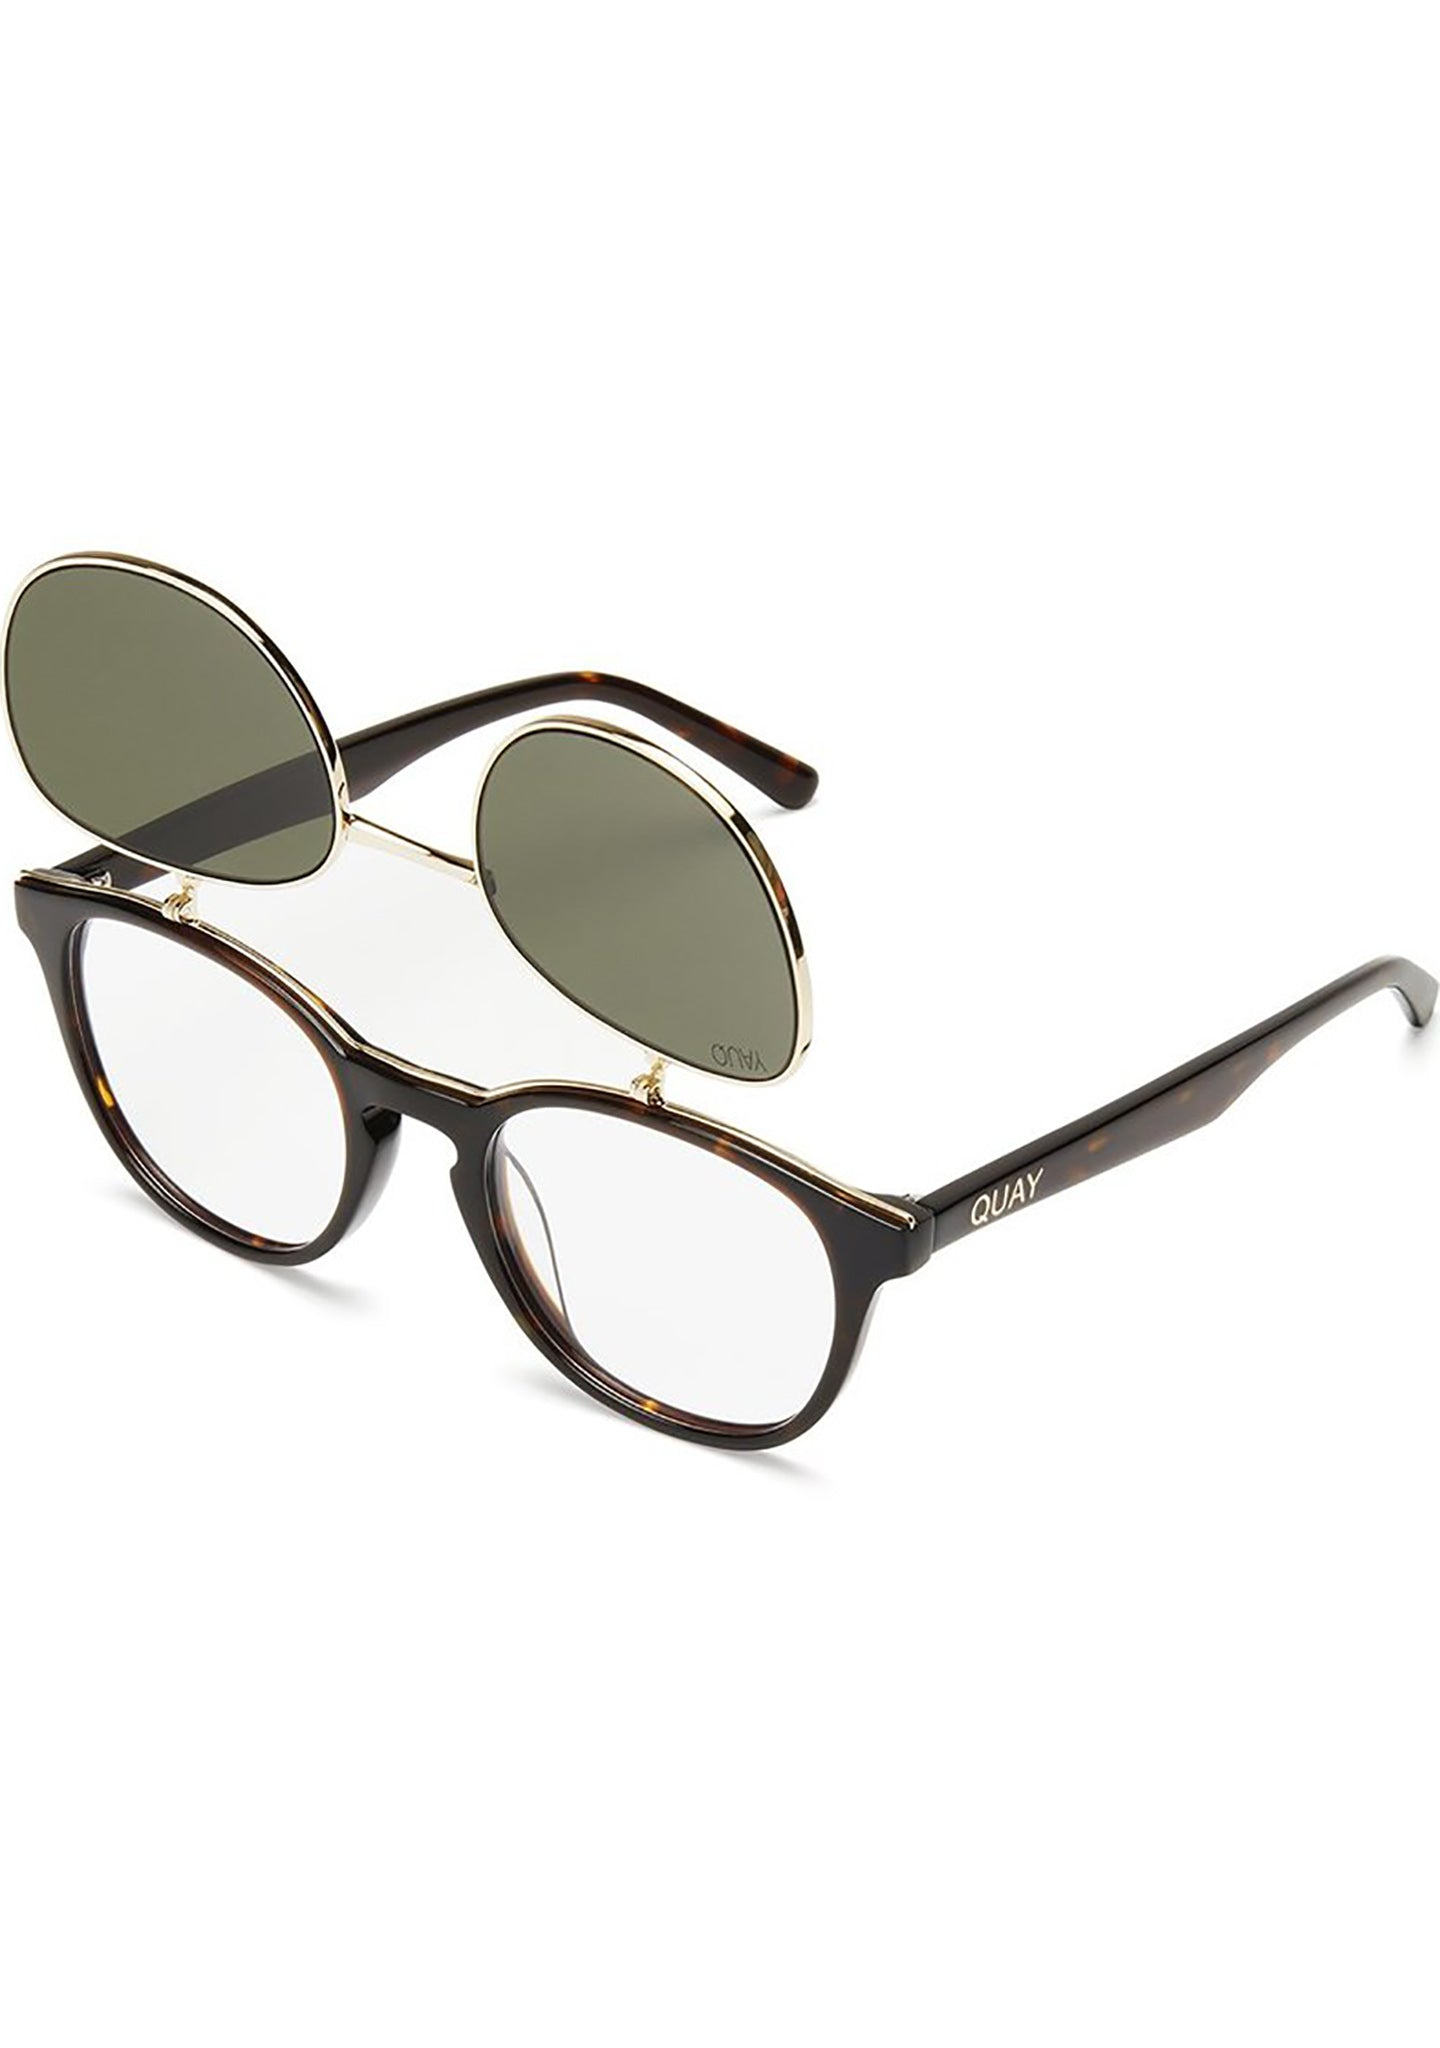 Penny Royal Sunglasses in Tortoise/Green